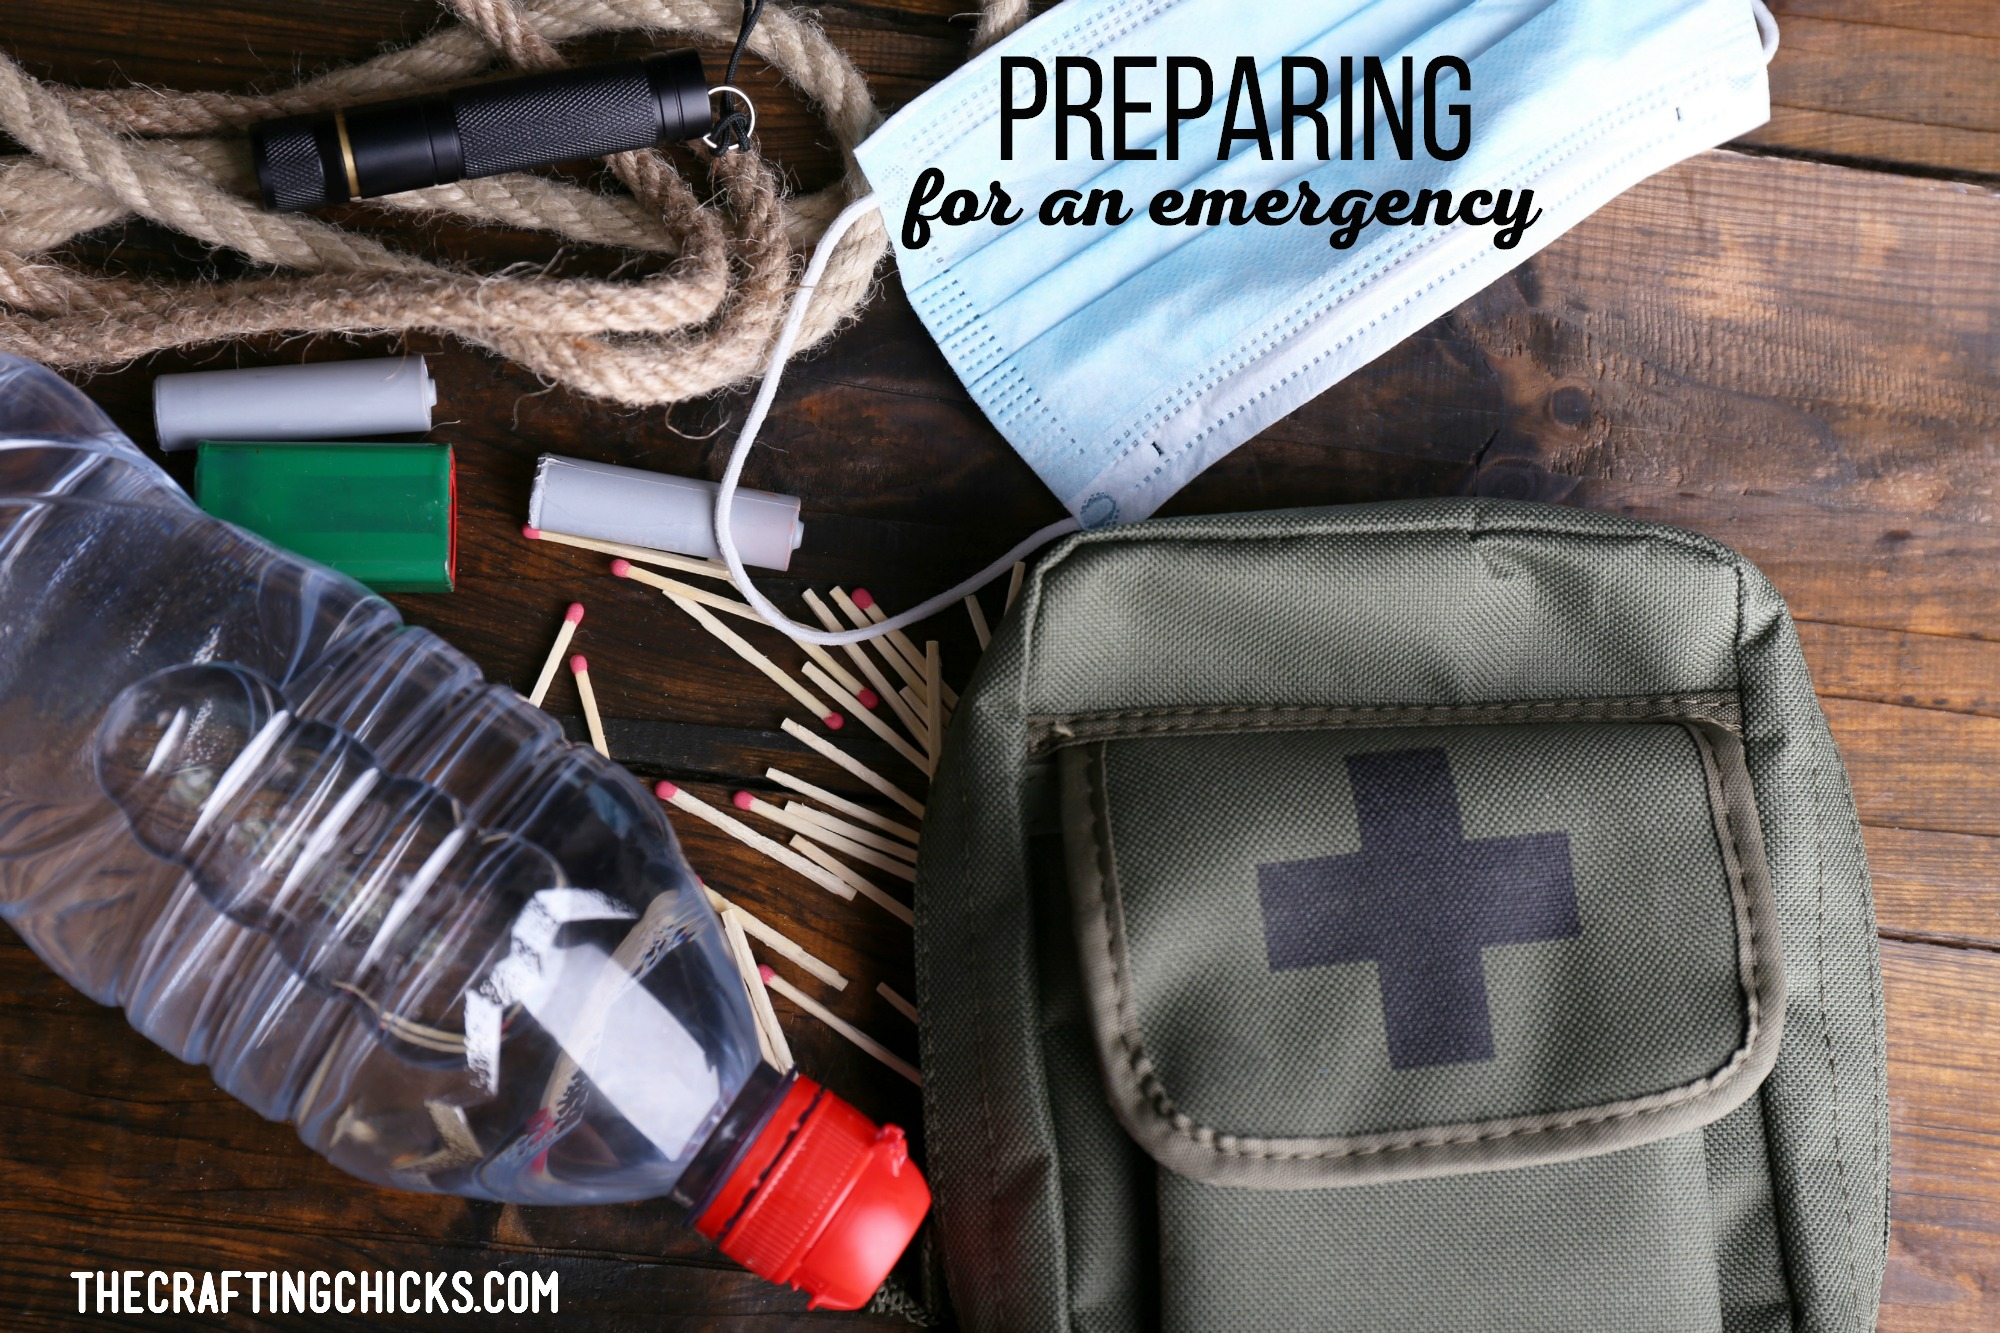 Preparing for an emergency creates a line of protection during uncertain and scary times. Whether you face a flood, fire, tornado, hurricane, earthquake, or other natural disasters, having a plan in place can be the difference between life and death.